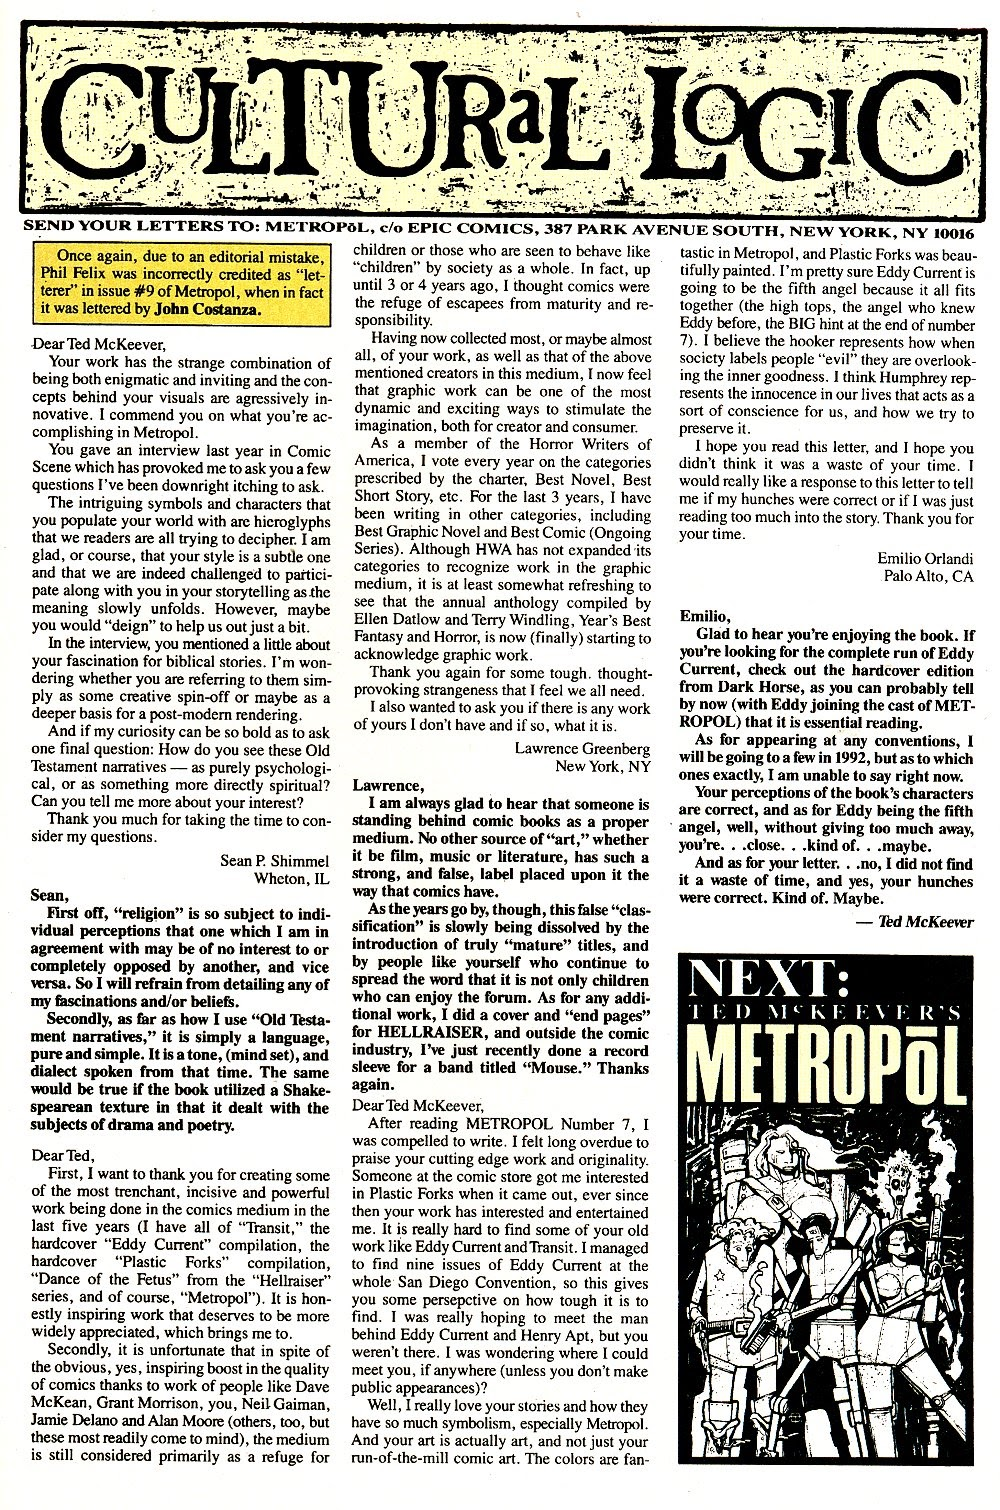 Read online Ted McKeever's Metropol comic -  Issue #11 - 31